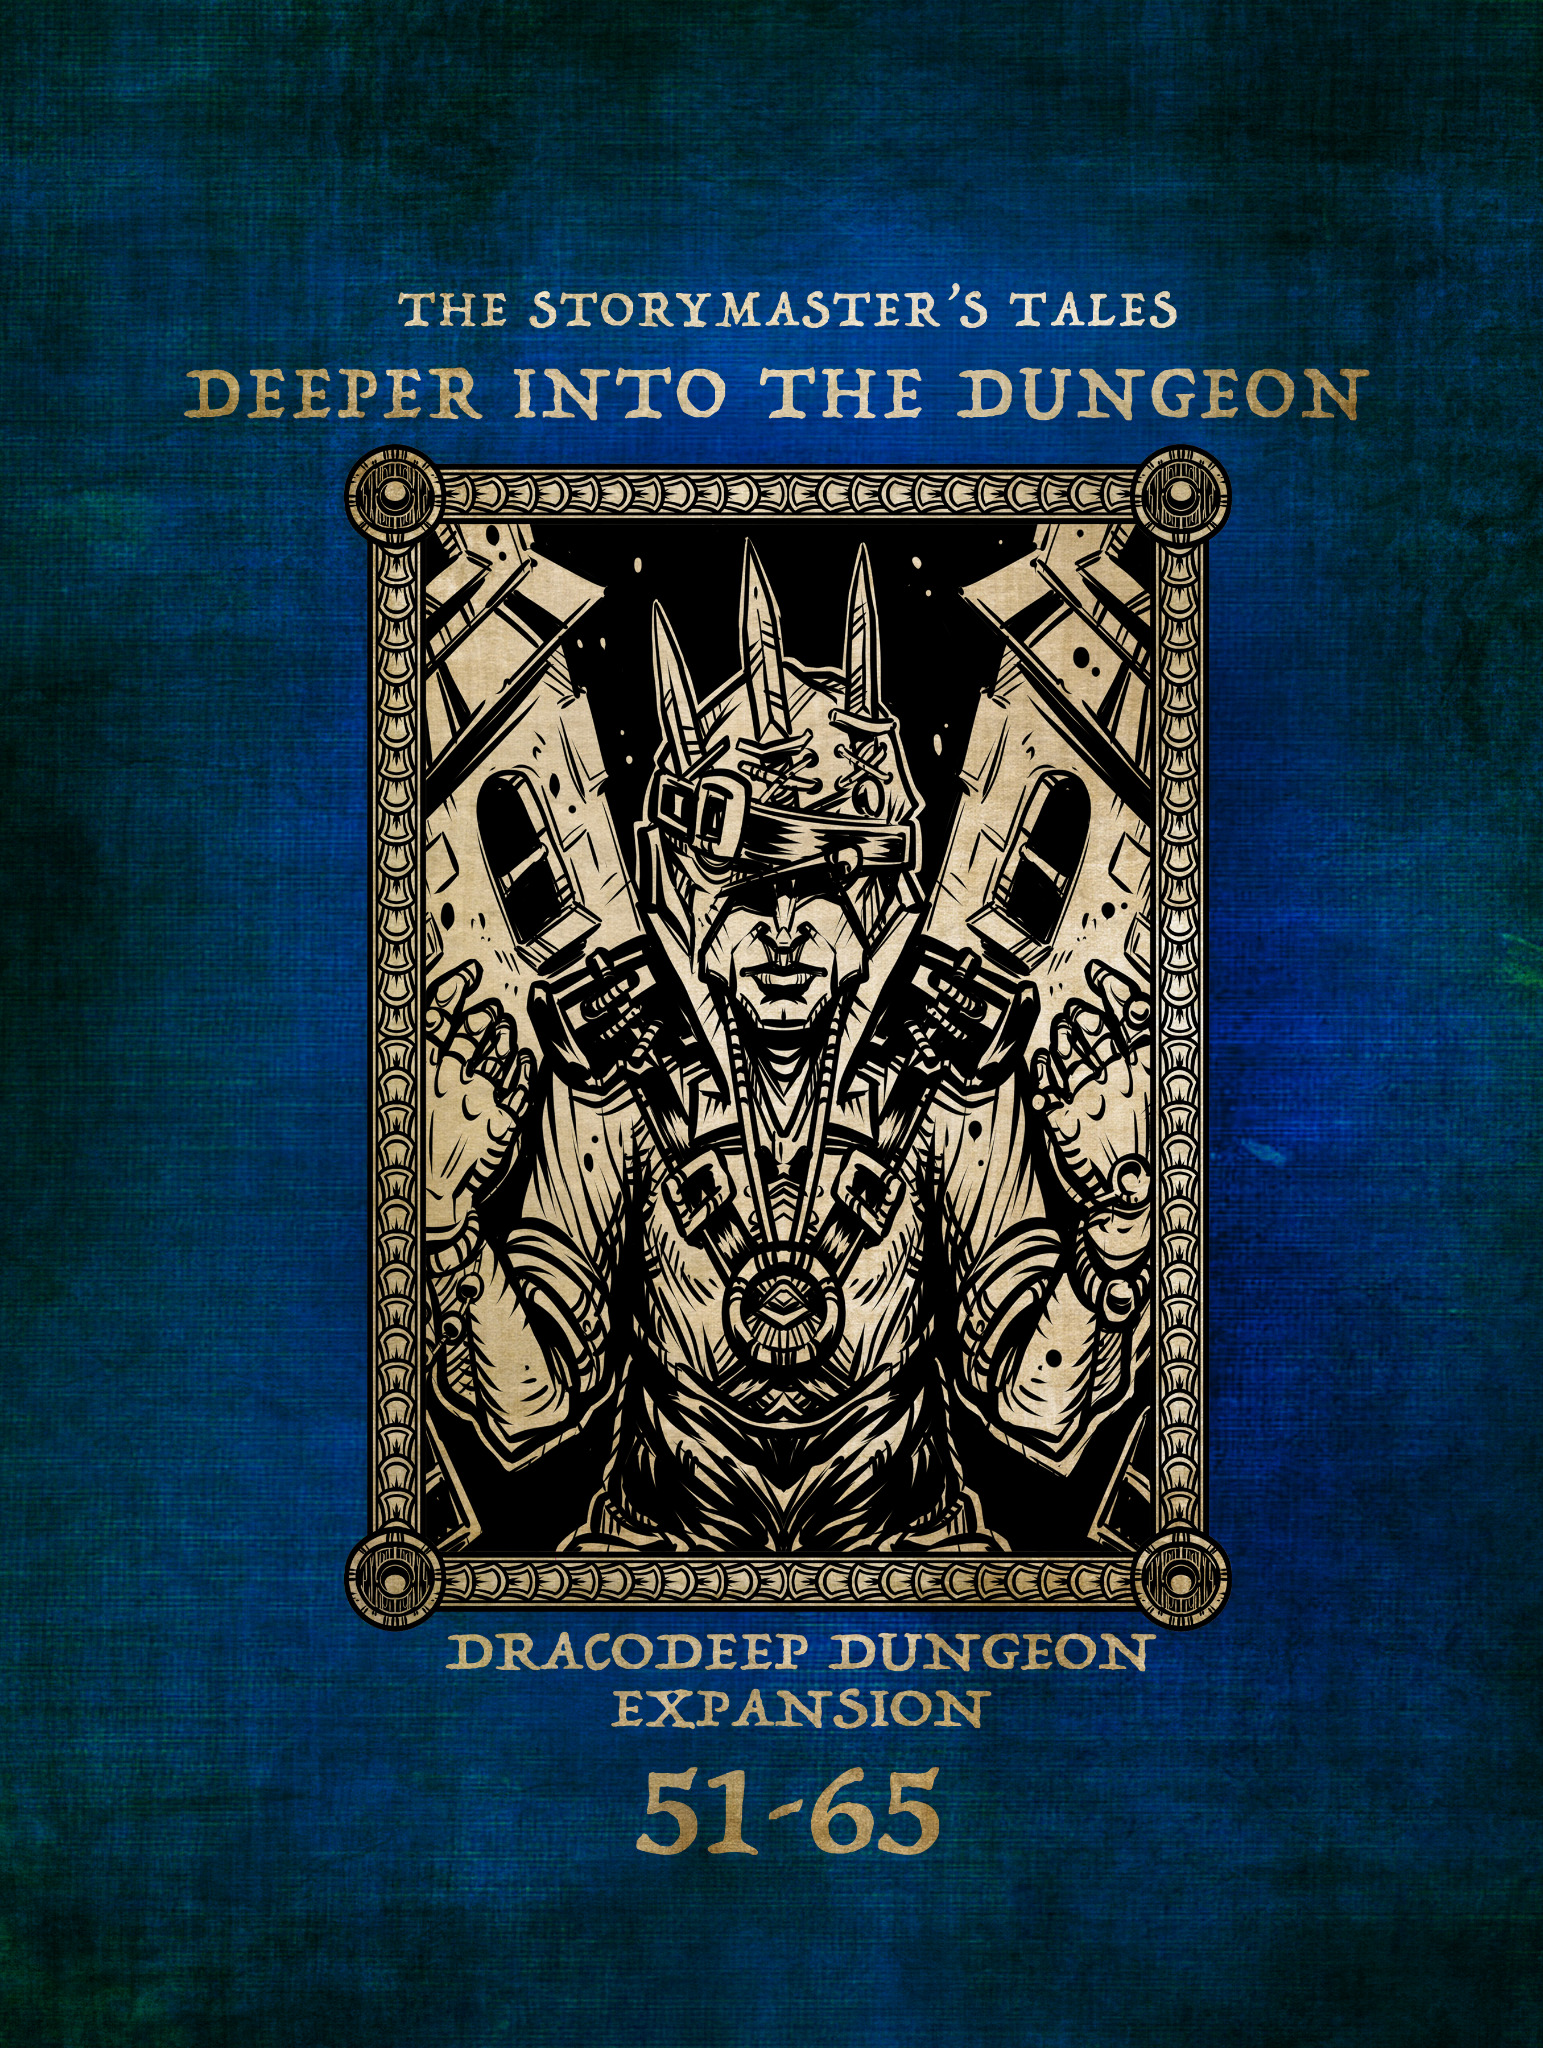 Deeper into the Dungeons (Dracodeep Dungeons Expansion)